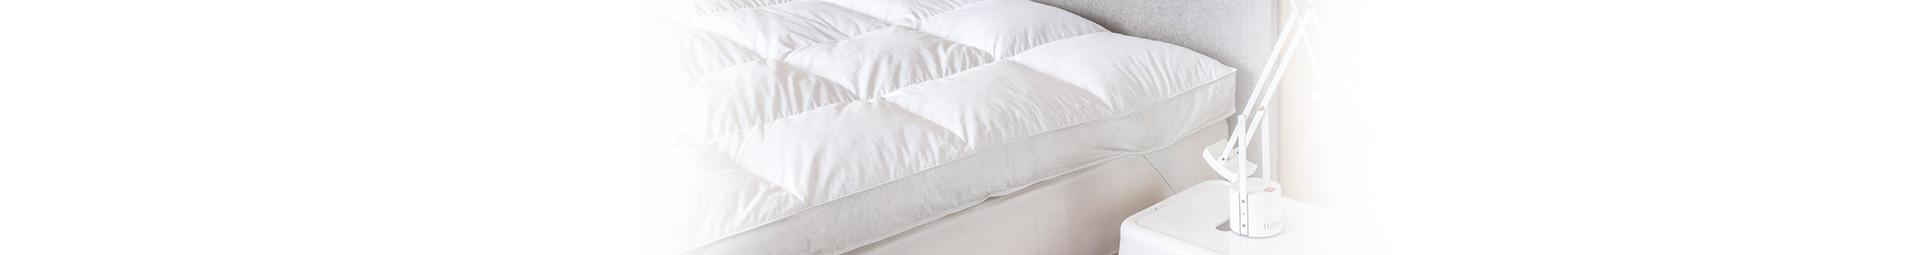 Firm mattress topper with 1650g/m² of feathers and natural down filling, Firm mattress topper to stabilize the body - Pyrenex